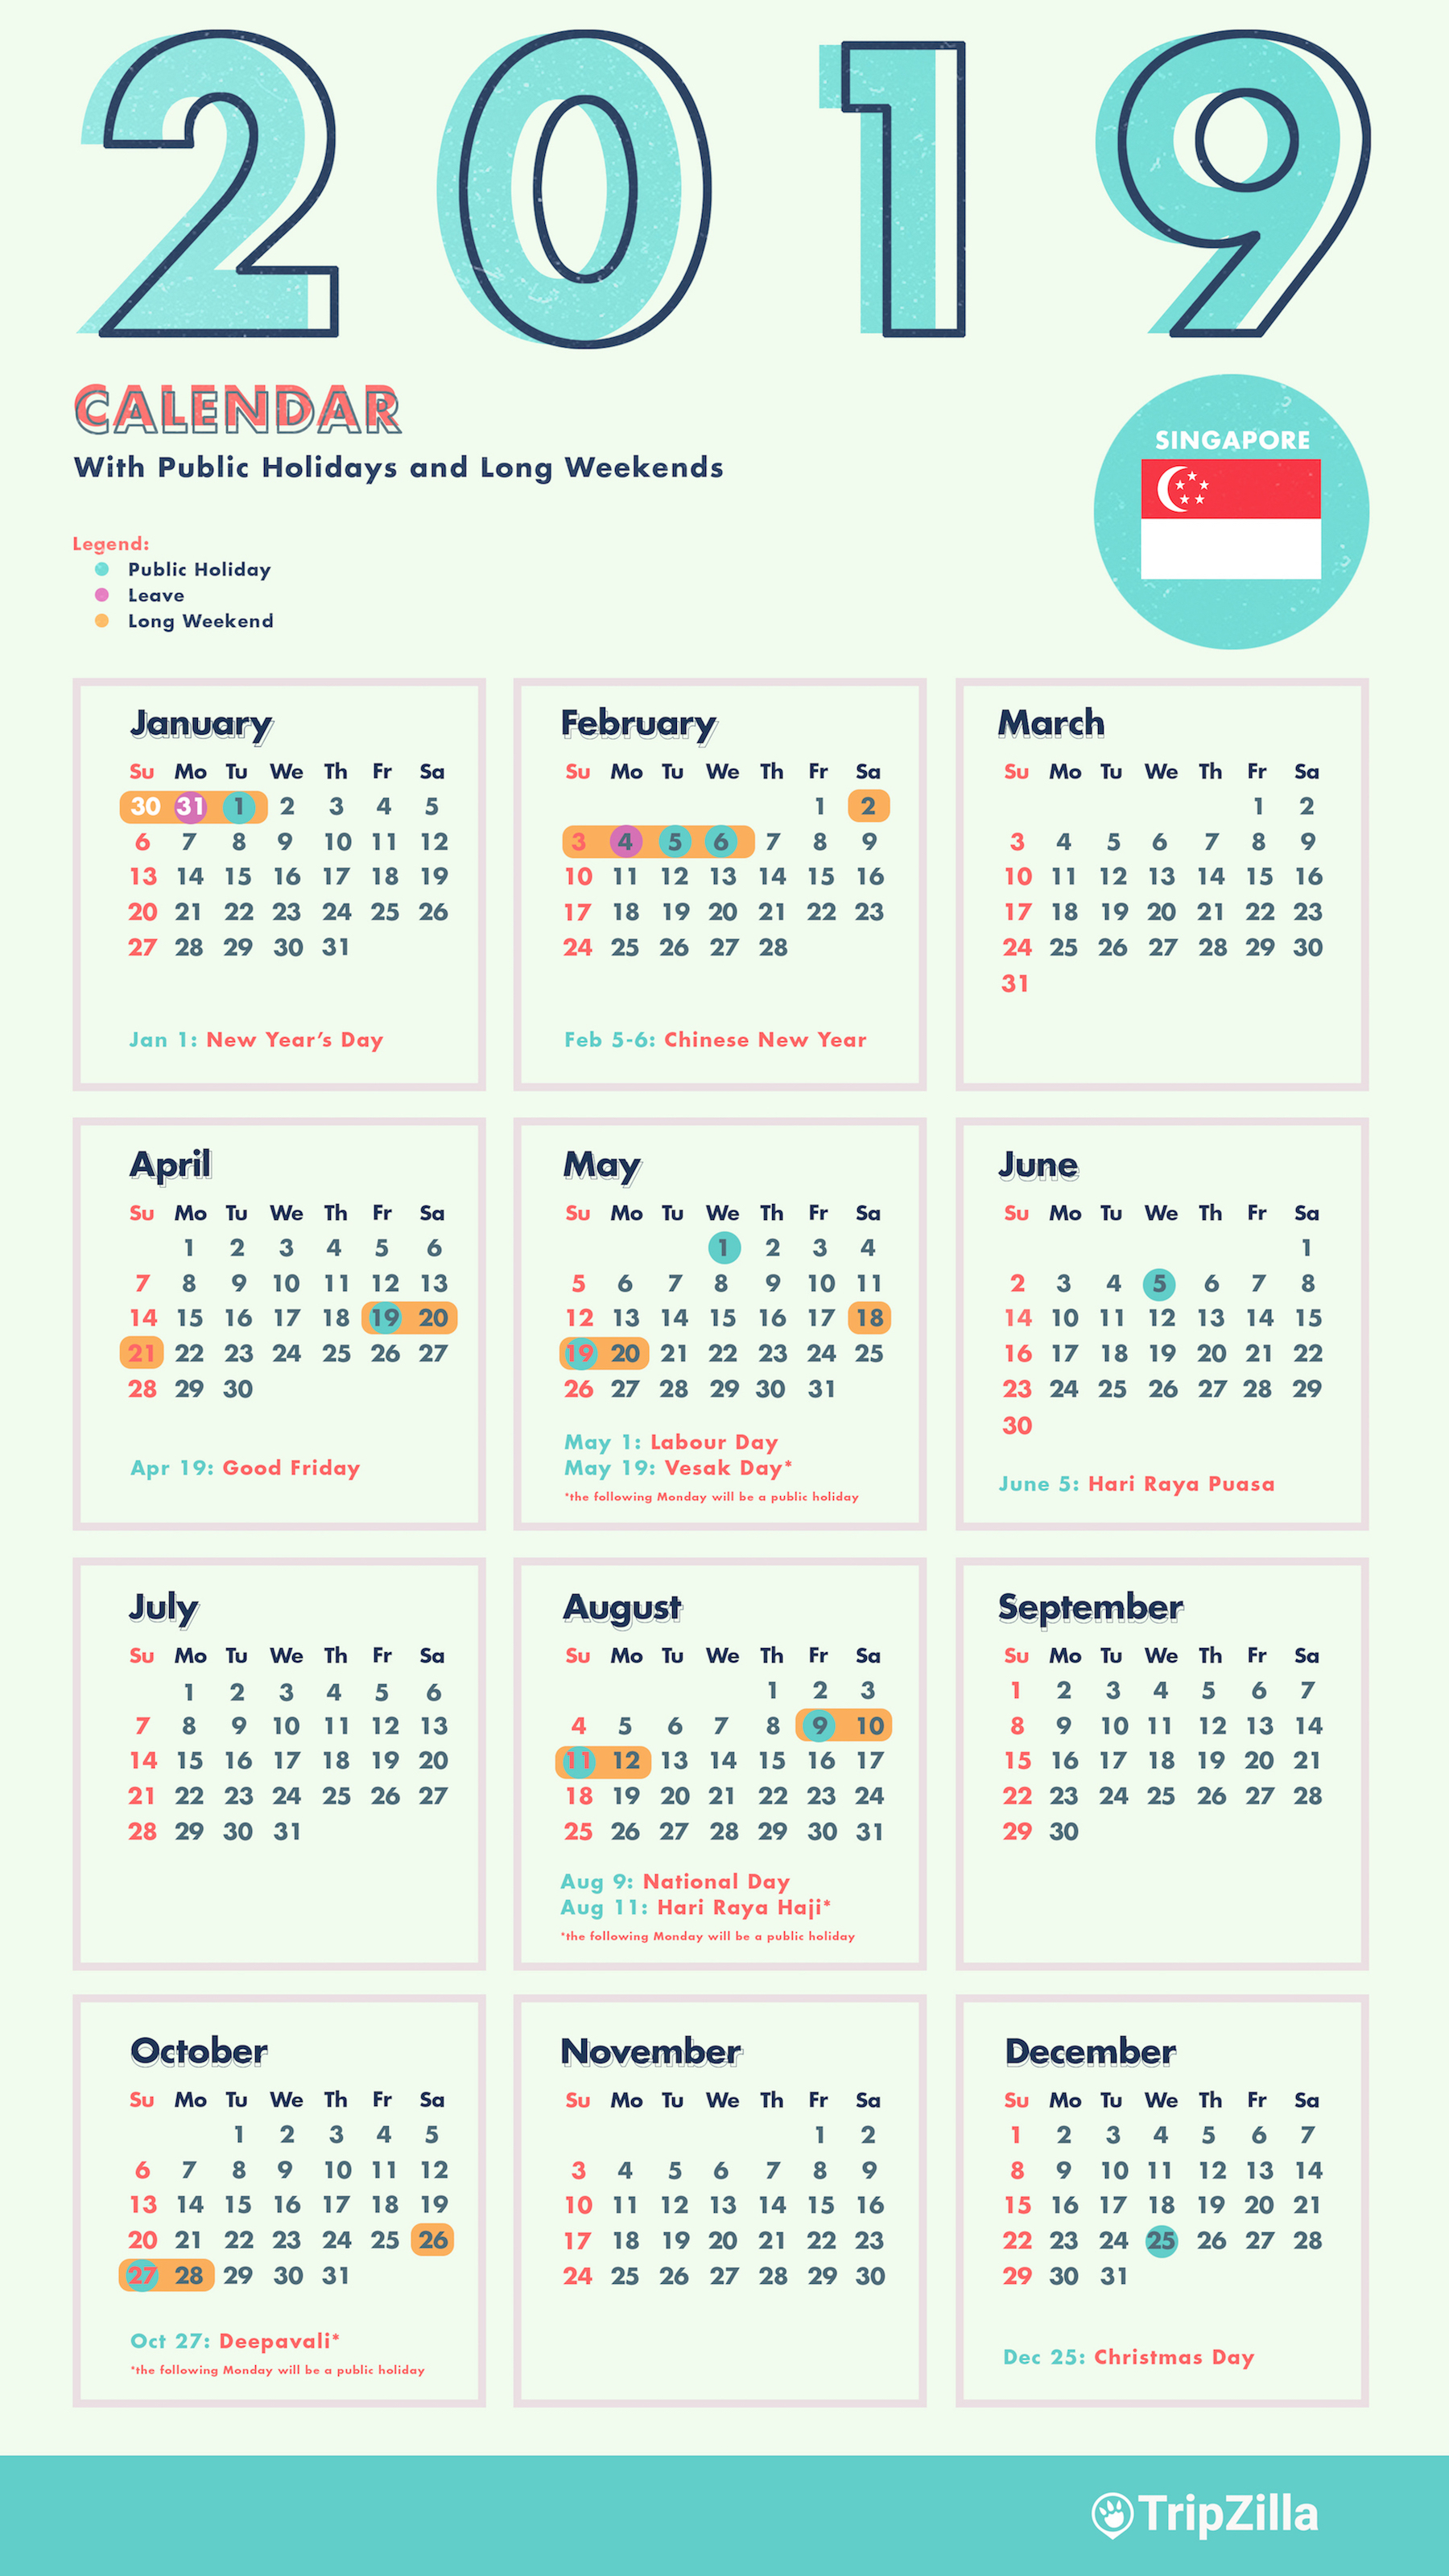 6 Long Weekends In Singapore In 2019 Bonus Calendar